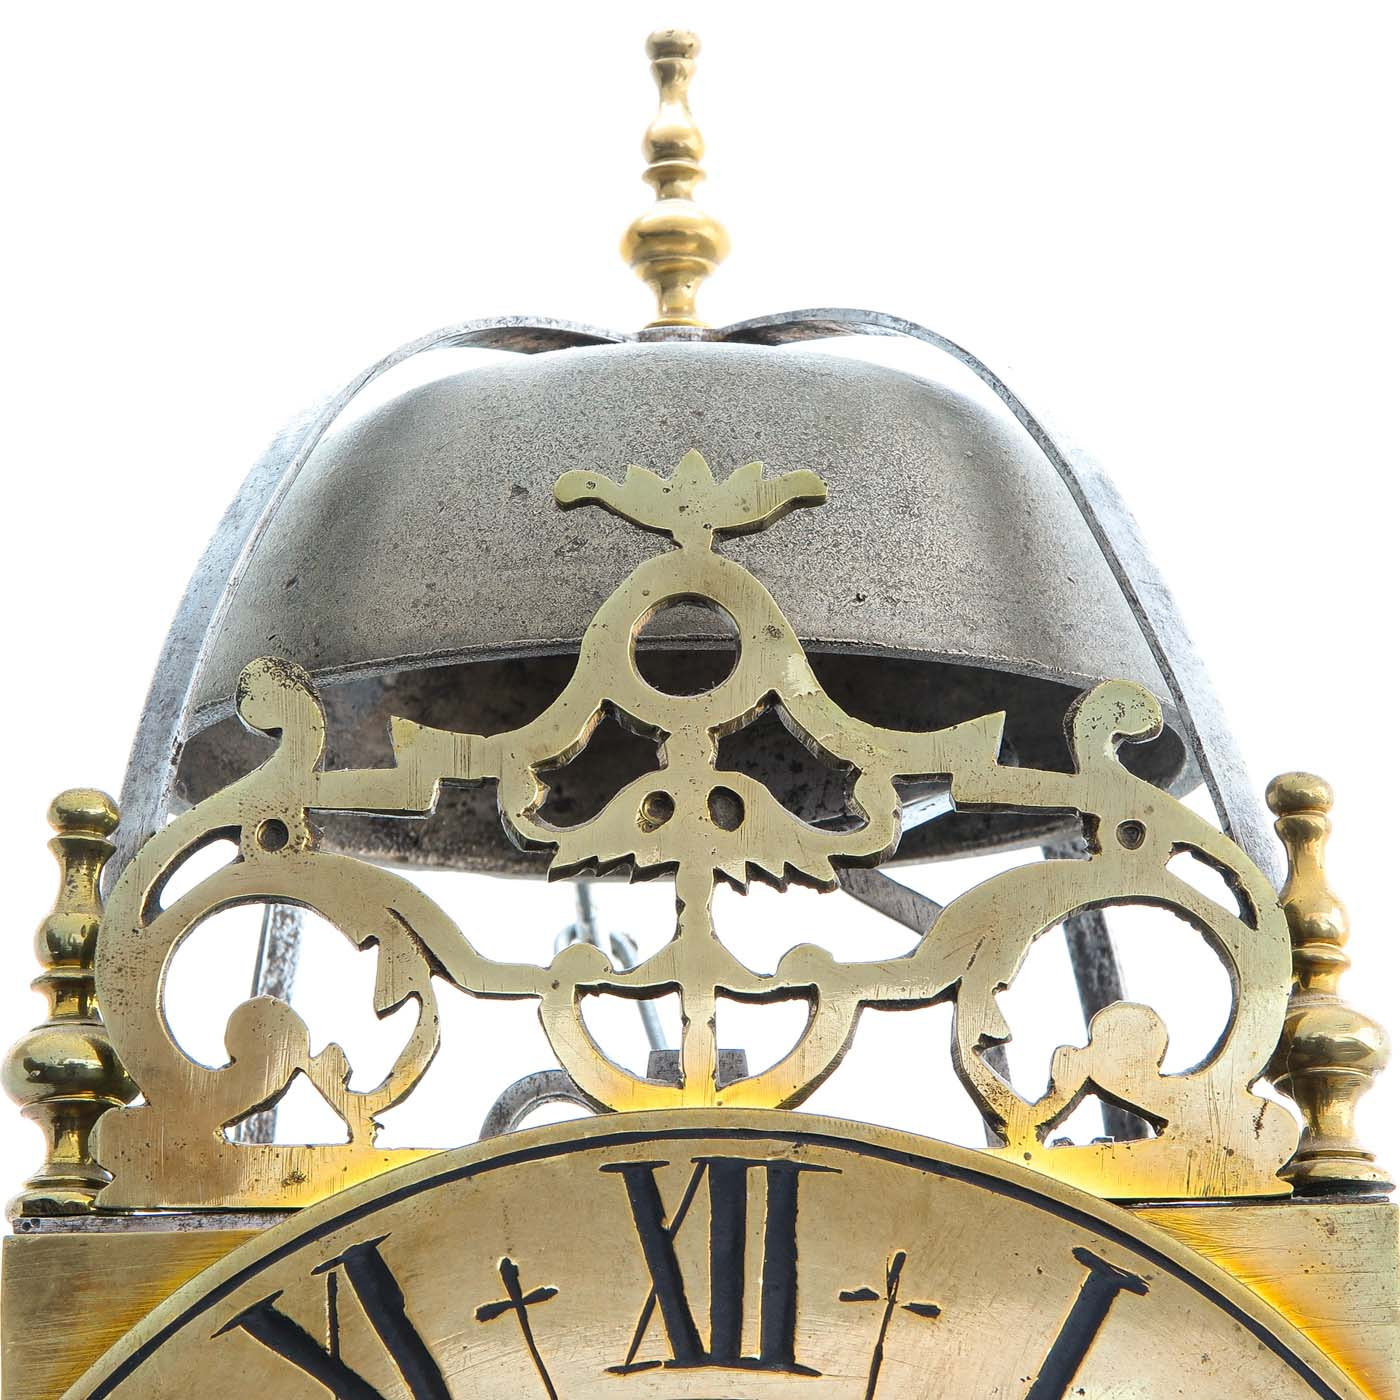 Lot 1045 - A 17th - 18th Century French Lantern clock